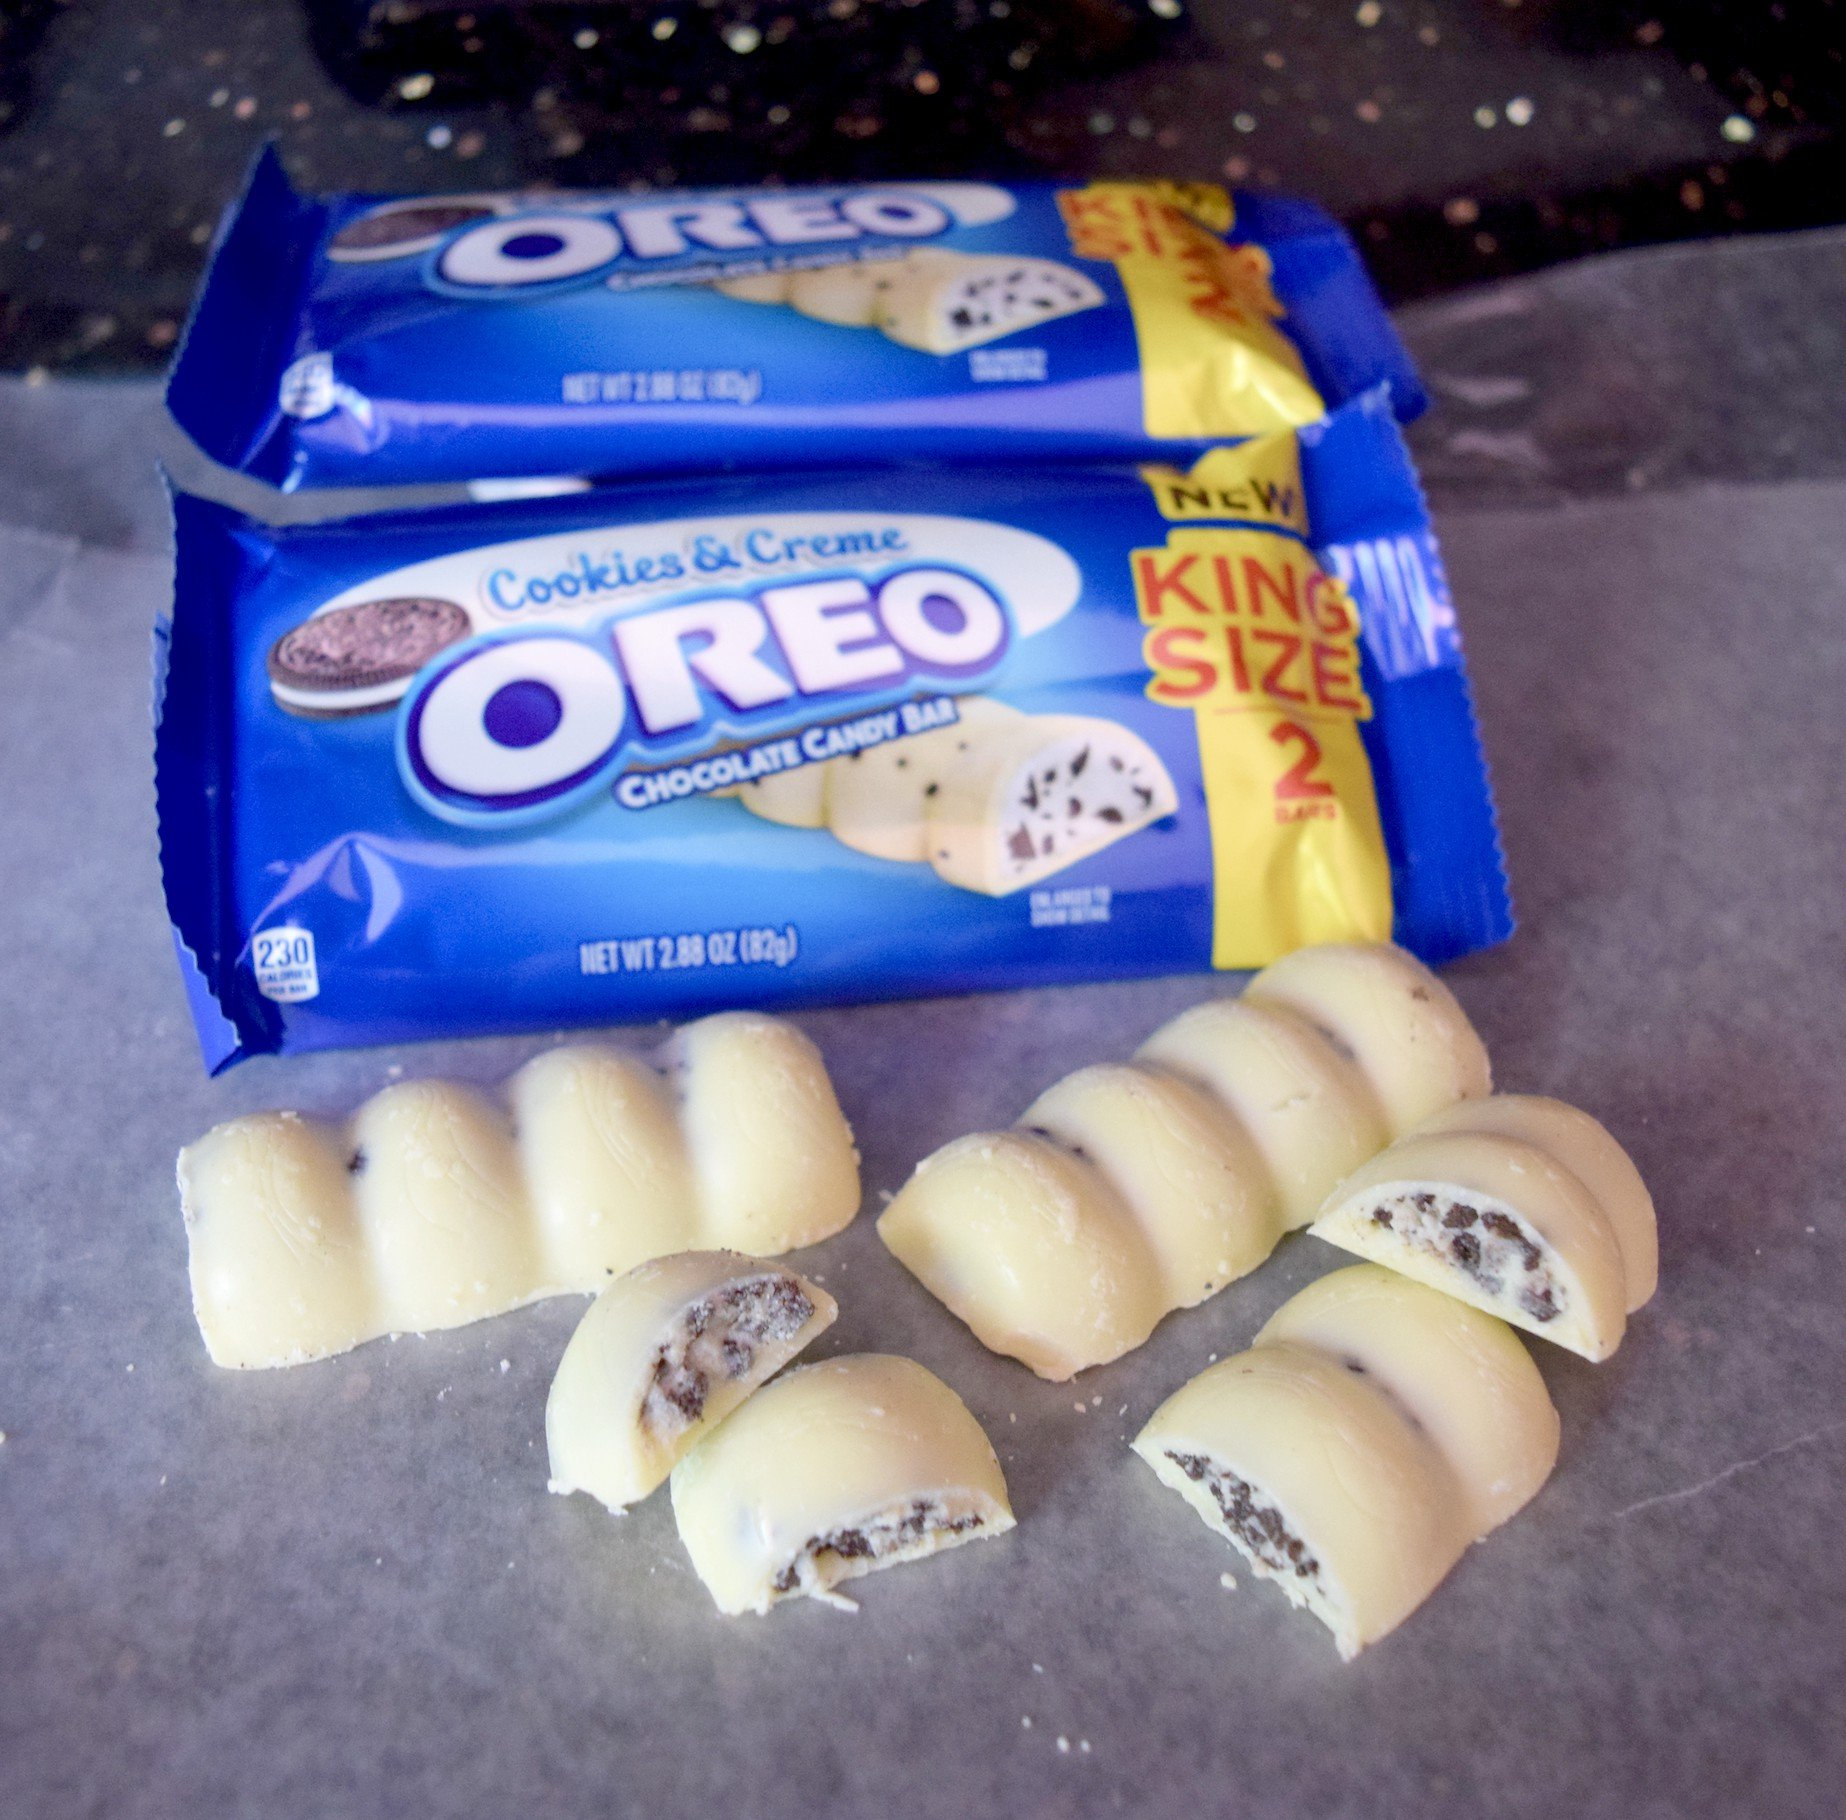 OREO cookie pieces and Milka white chocolate candy come together to create the amazingly delicious OREO Cookies & Creme Chocolate Bar!